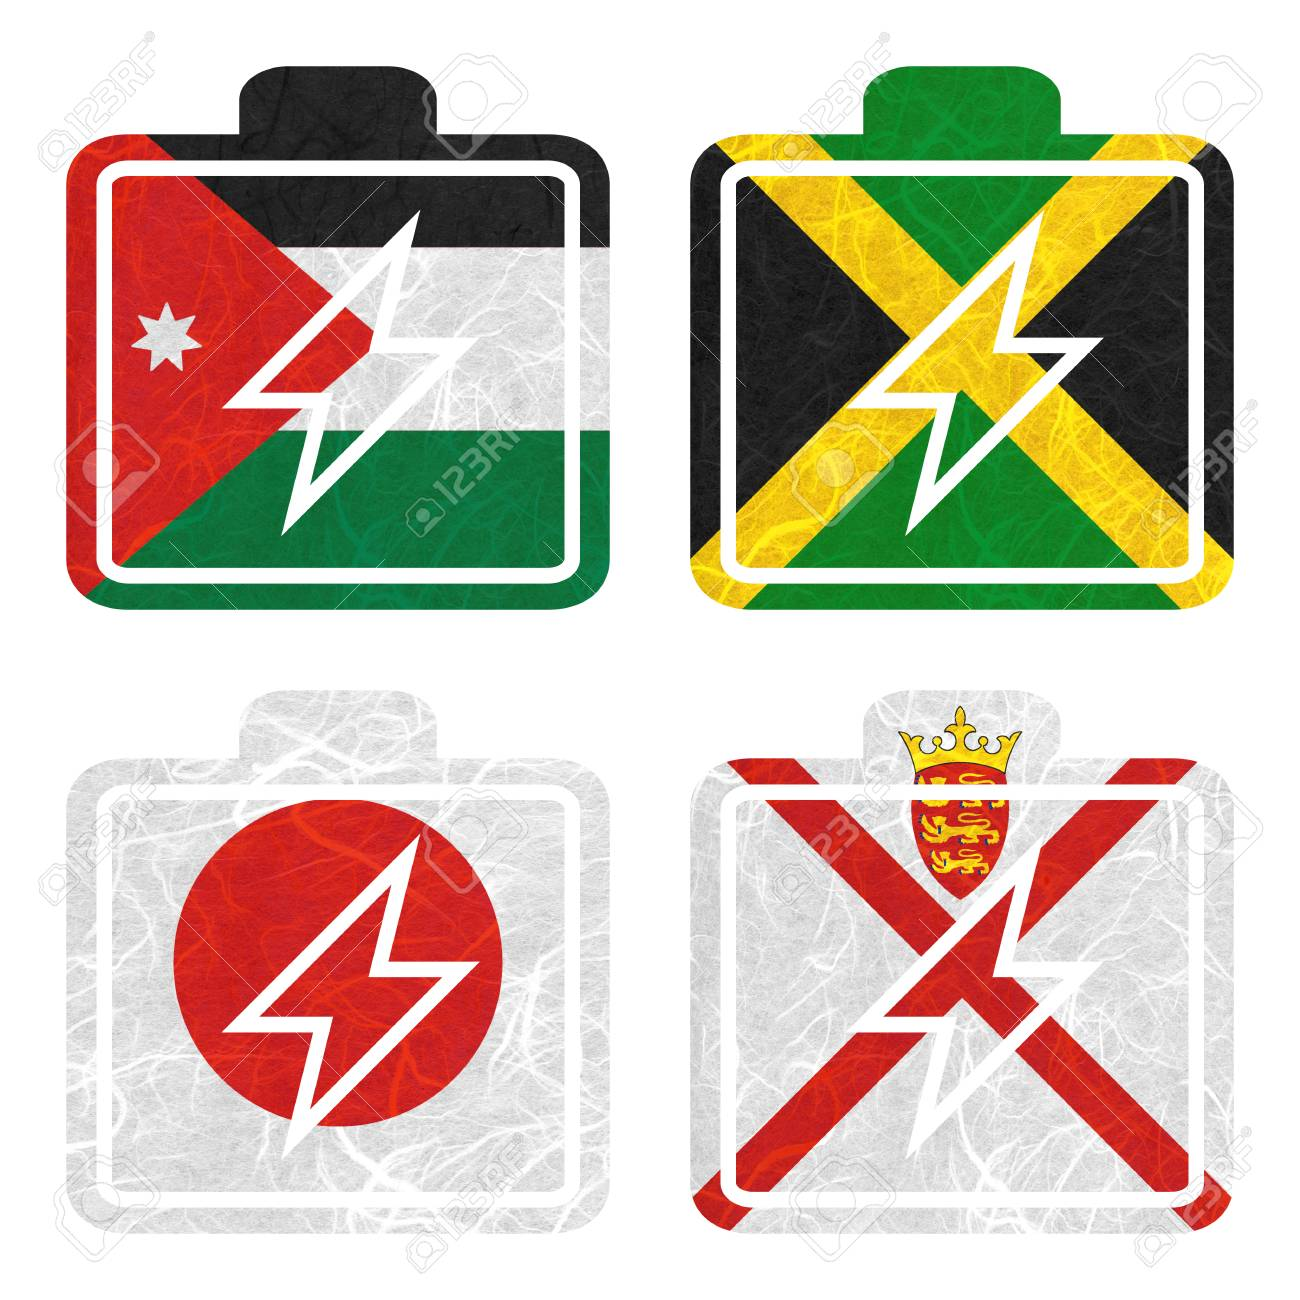 Nation Flag  Battery recycled paper on white background  ( Jamaica